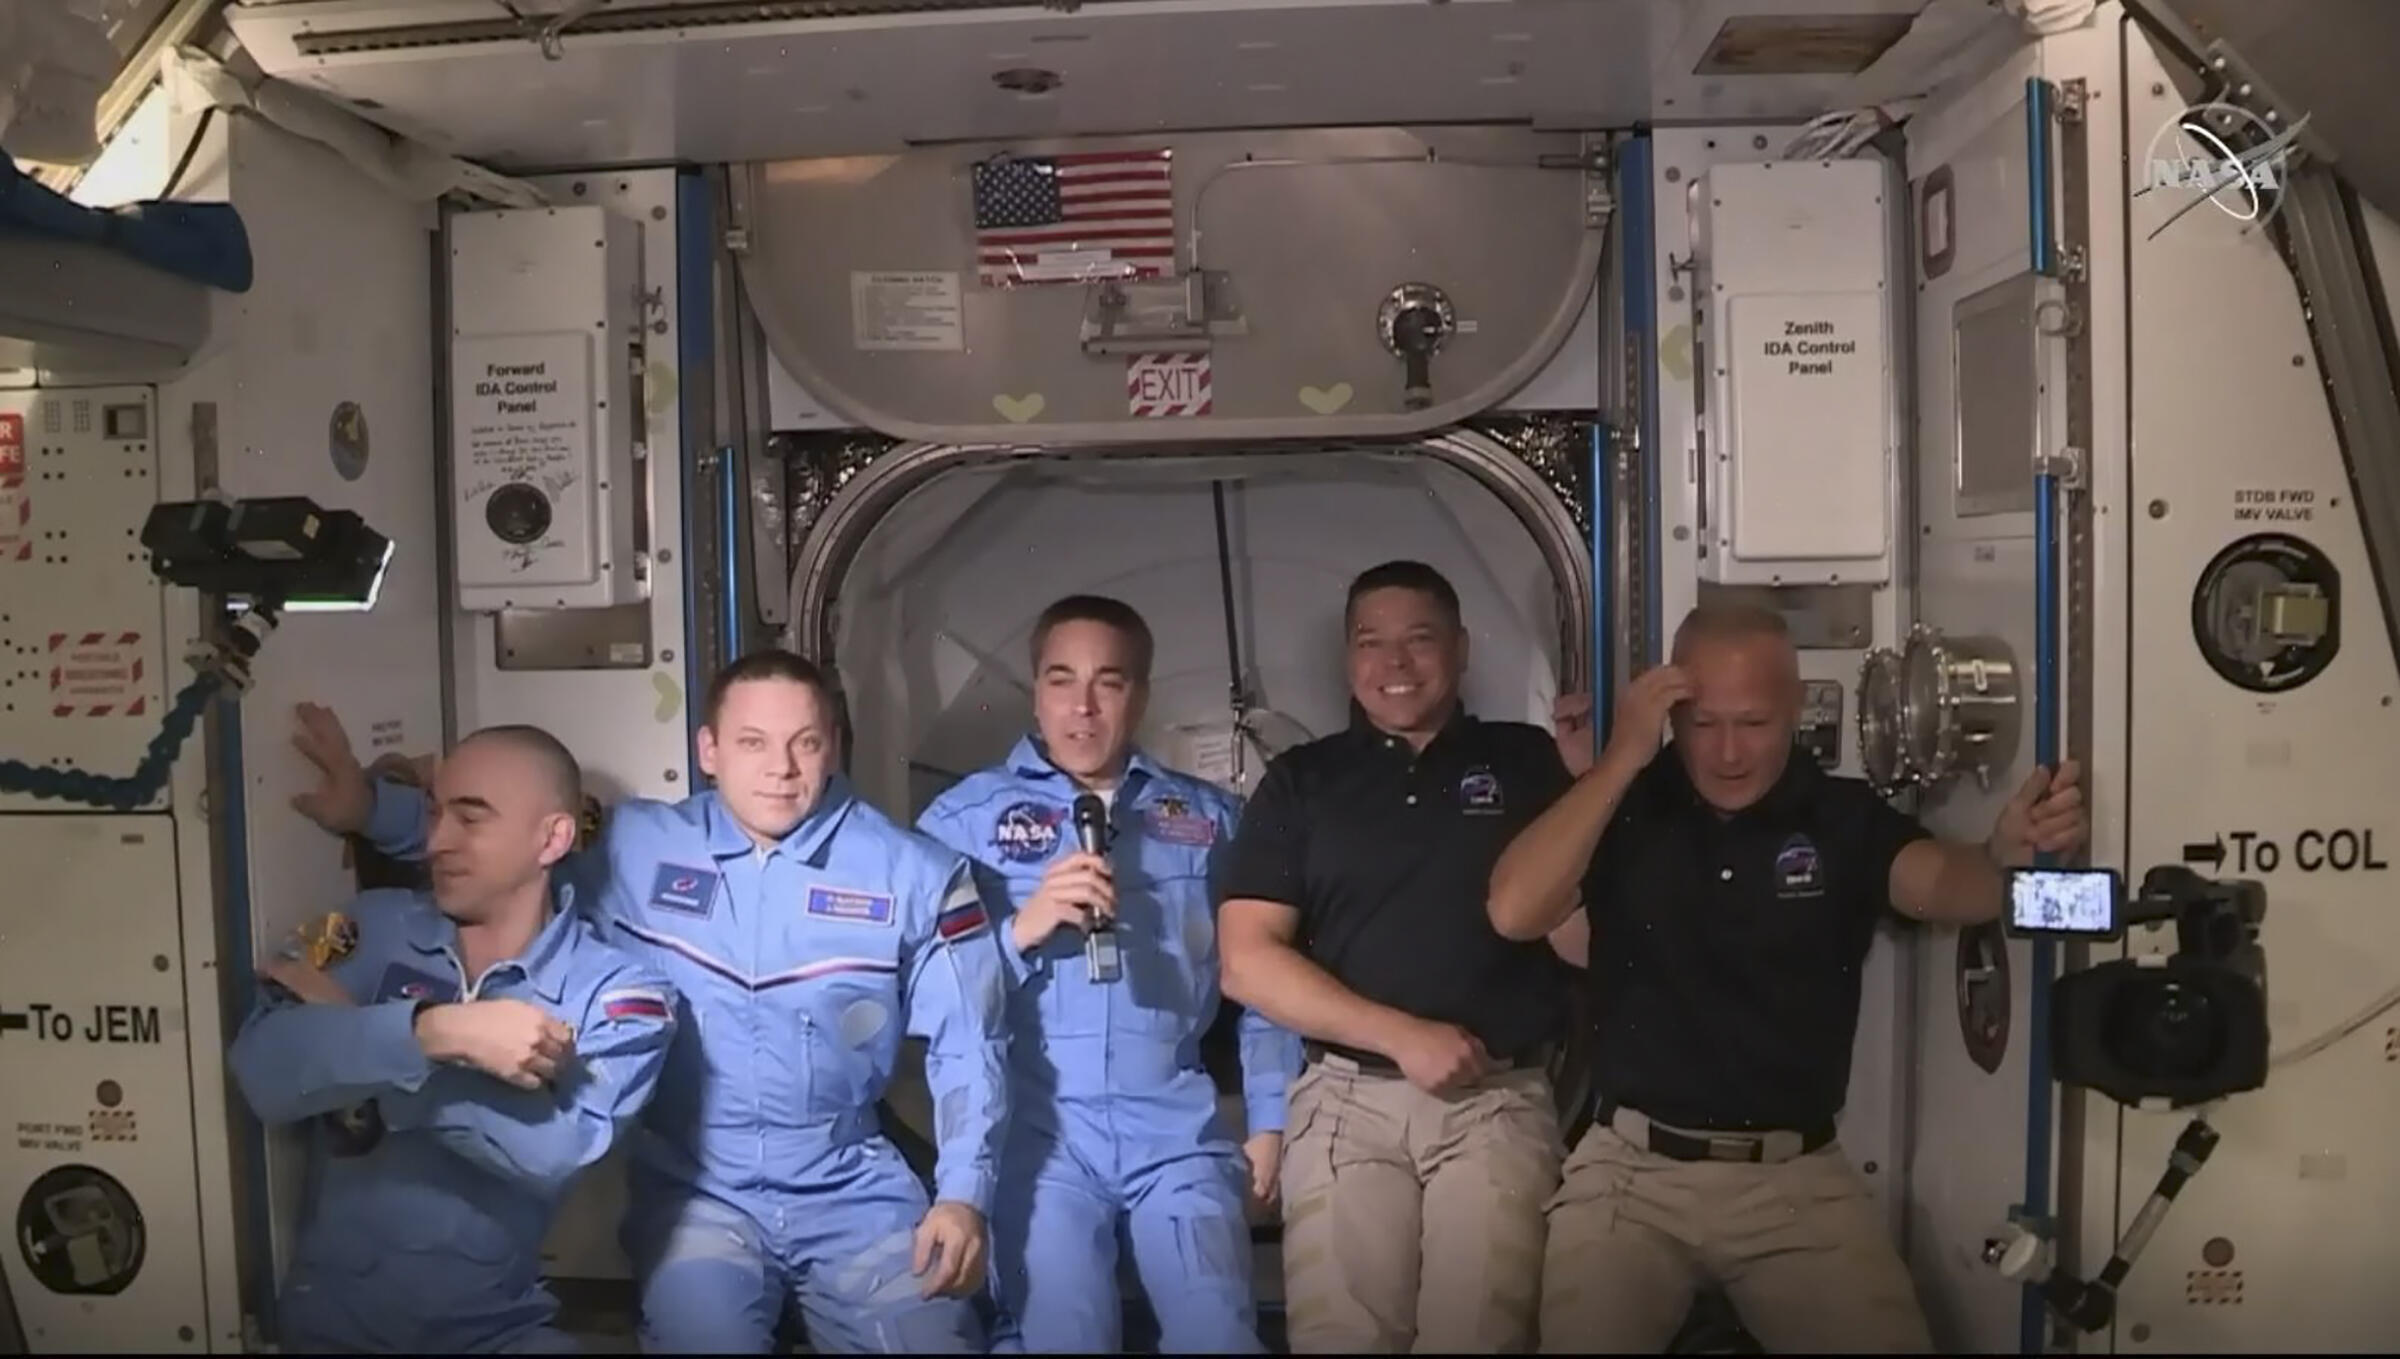 NASA photo shows astronauts Douglas Hurley (right) and Robert Behnken (second right) at the International Space Station posing with other astronauts on May 31, 2020.